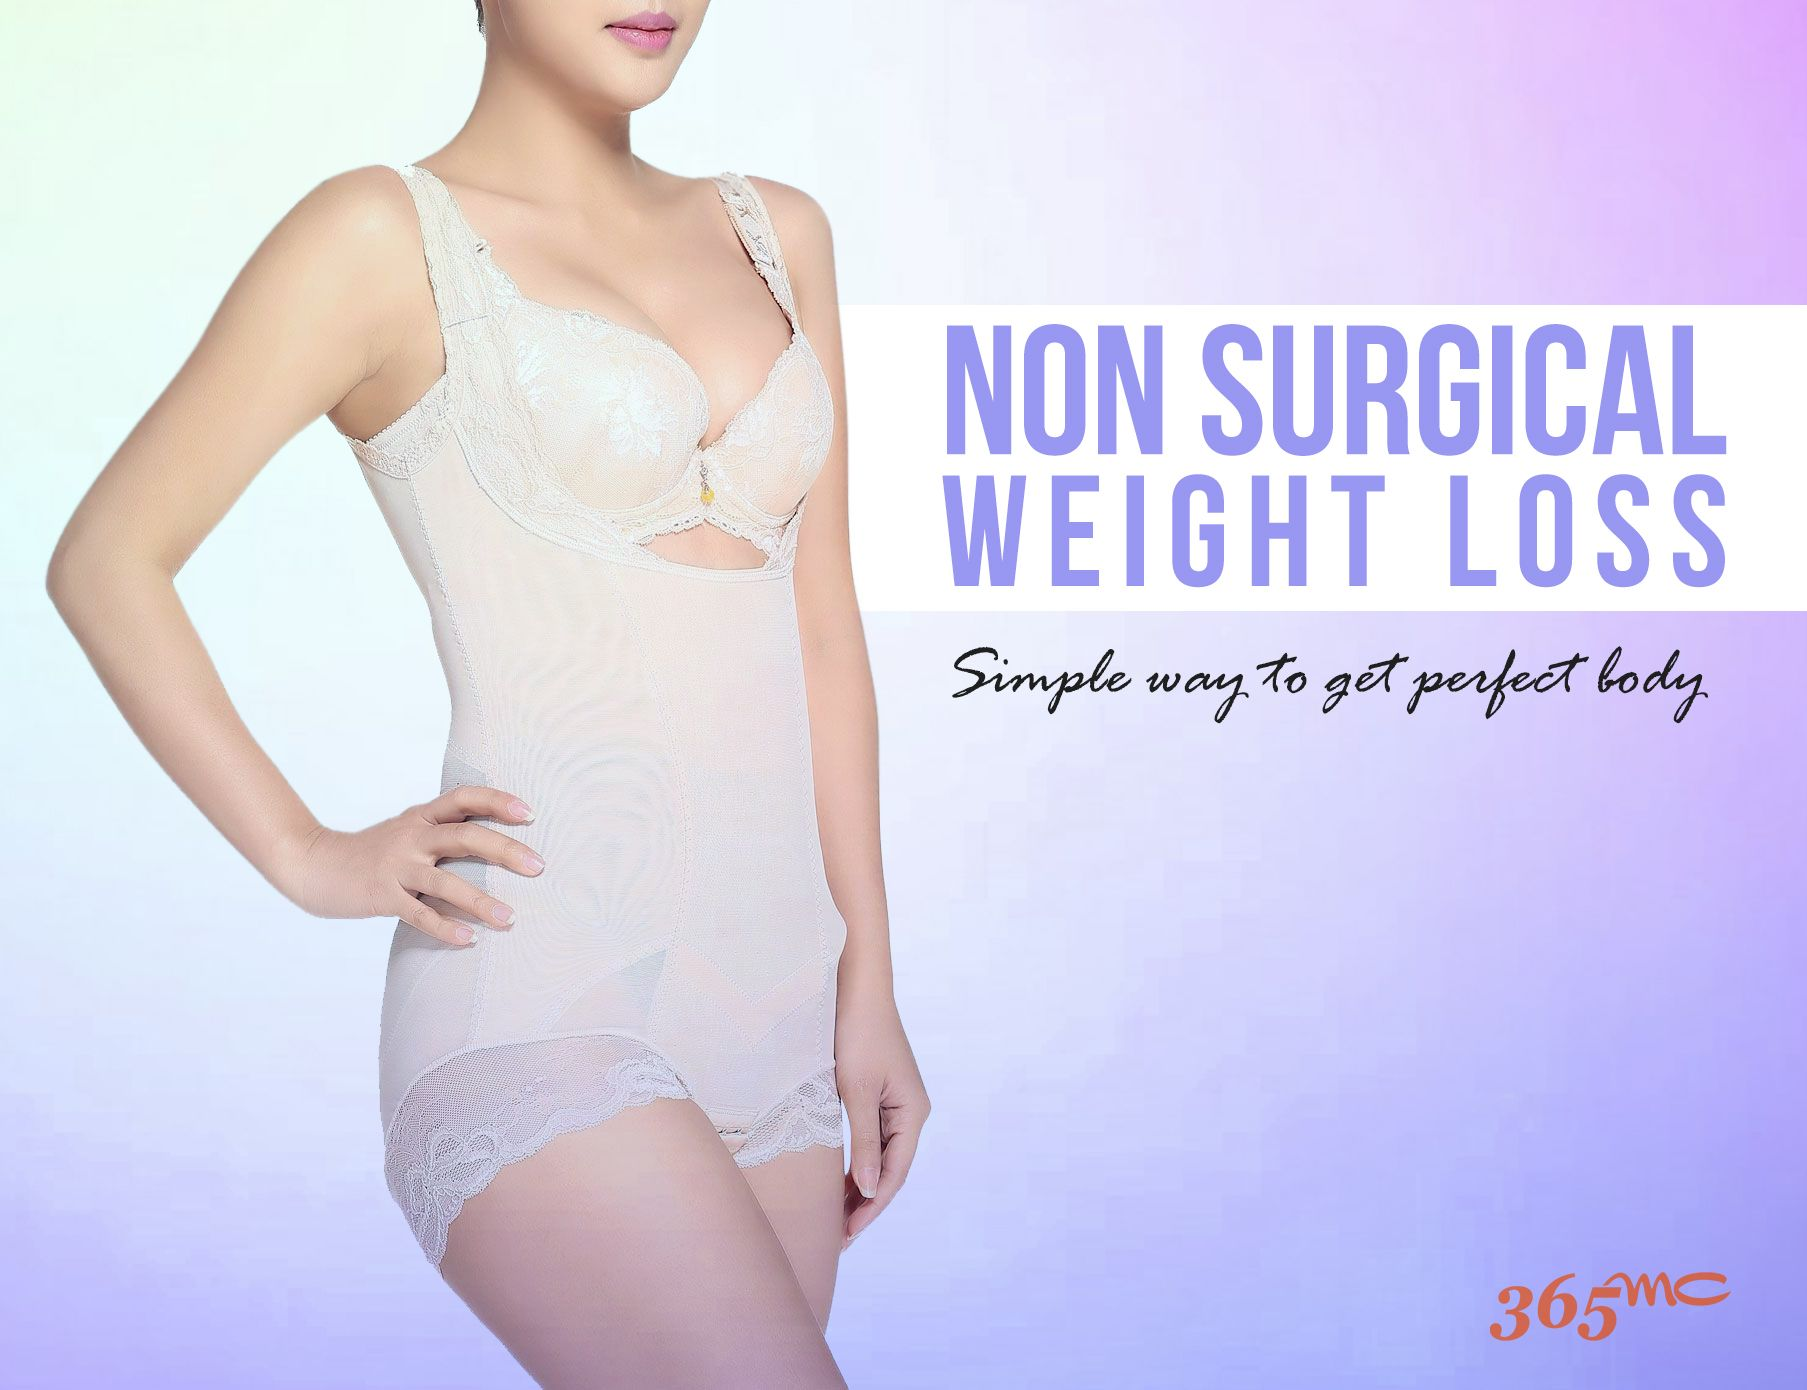 Non Surgical Hpl Injection For Weight Loss Weight Loss Therapy